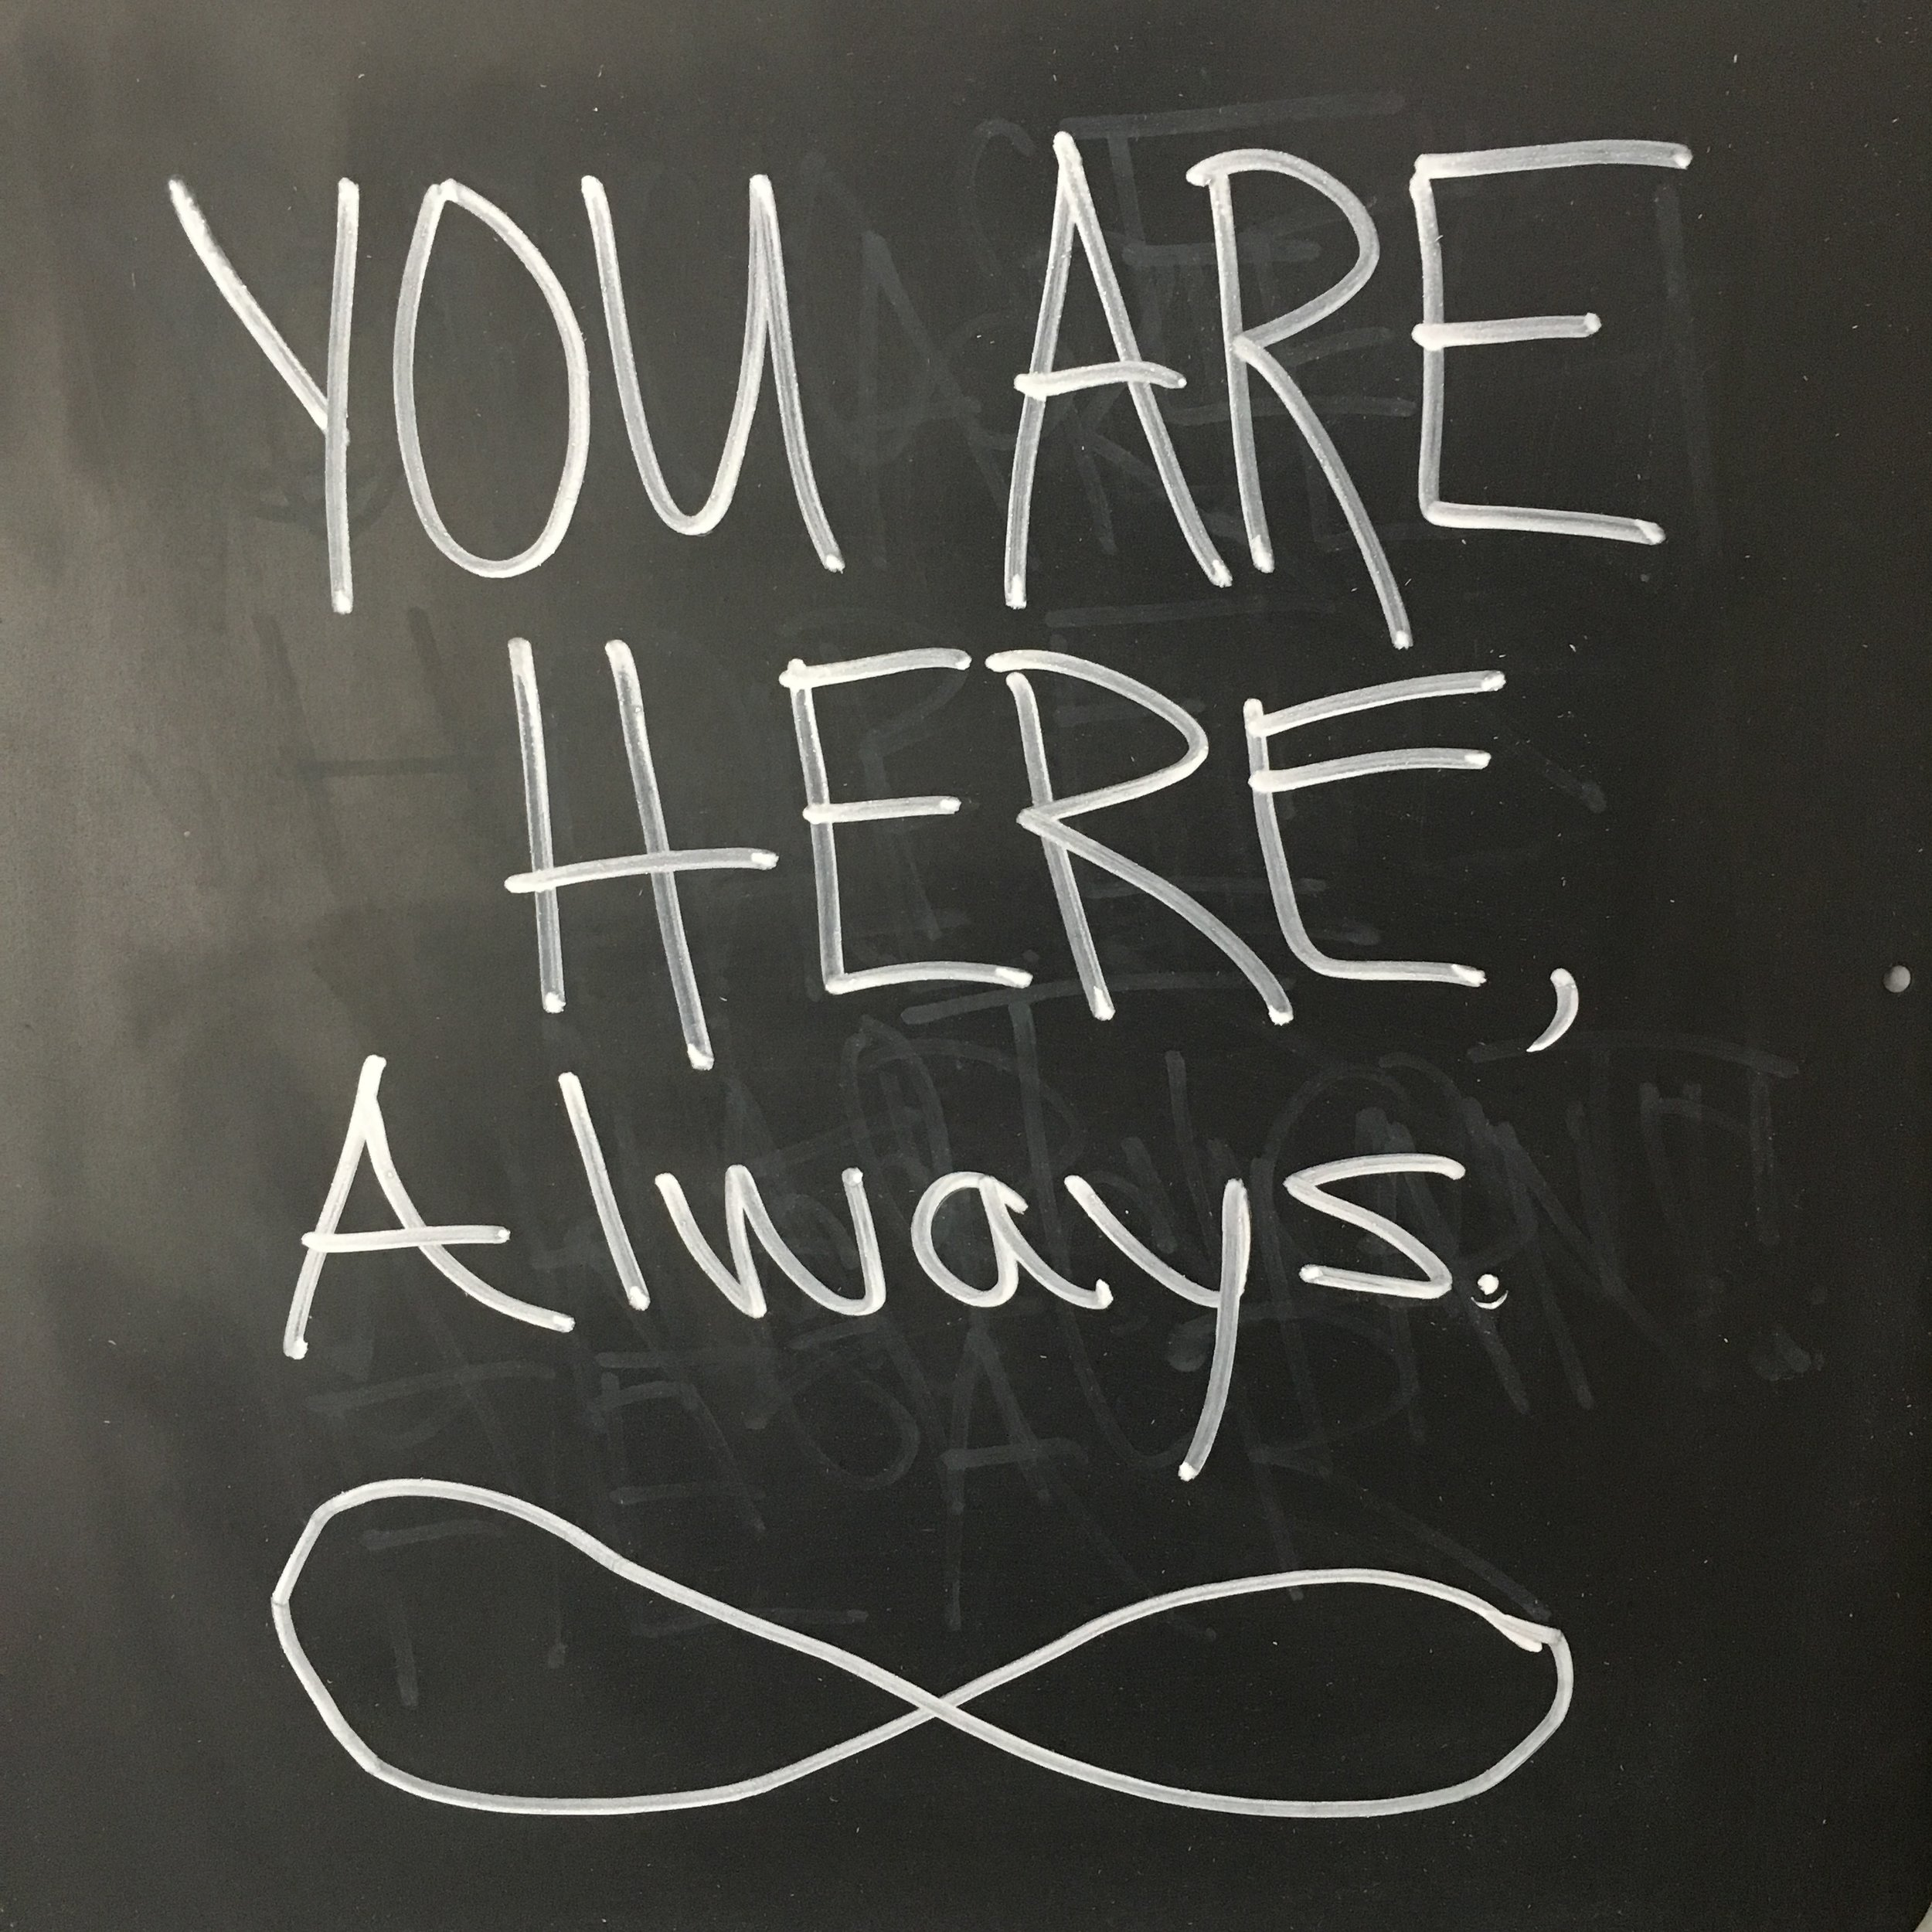 The infinity symbol on the chalkboard above my desk.